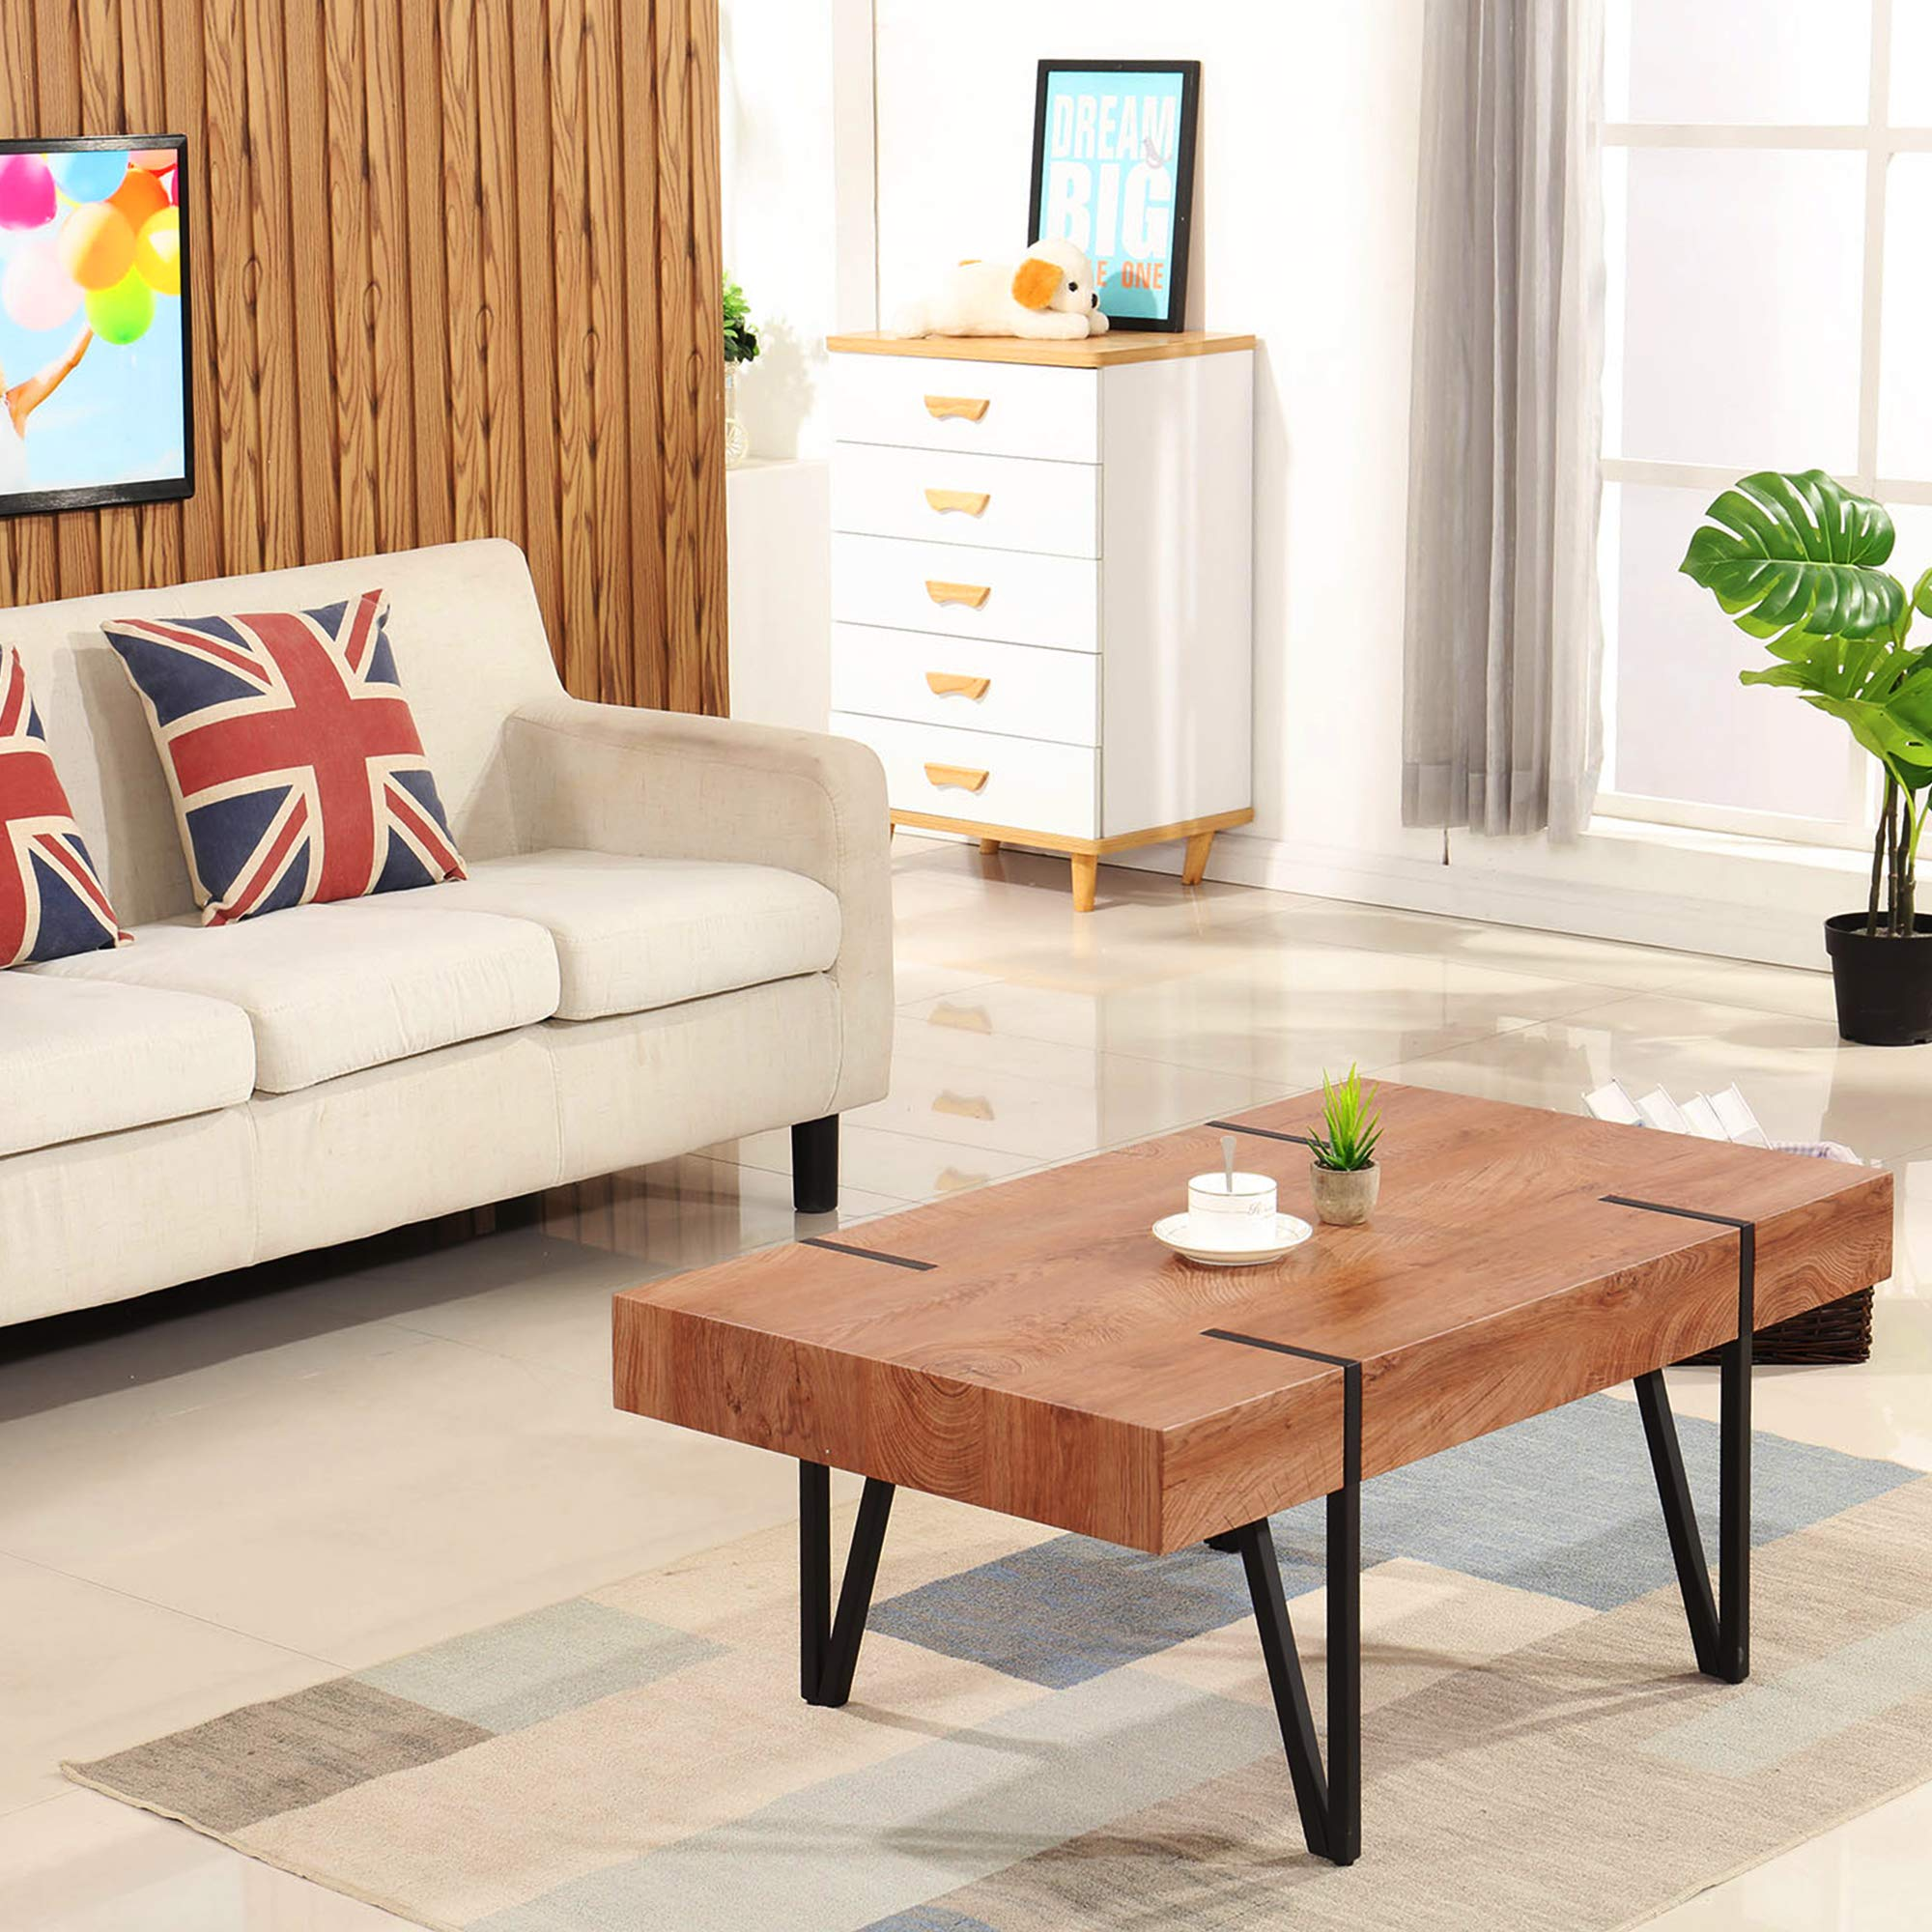 Ivinta Modern Industrial Coffee Table for Living Room Mid-Century Rustic Plain Table Top Sofa Table 42x24x17inch by Ivinta